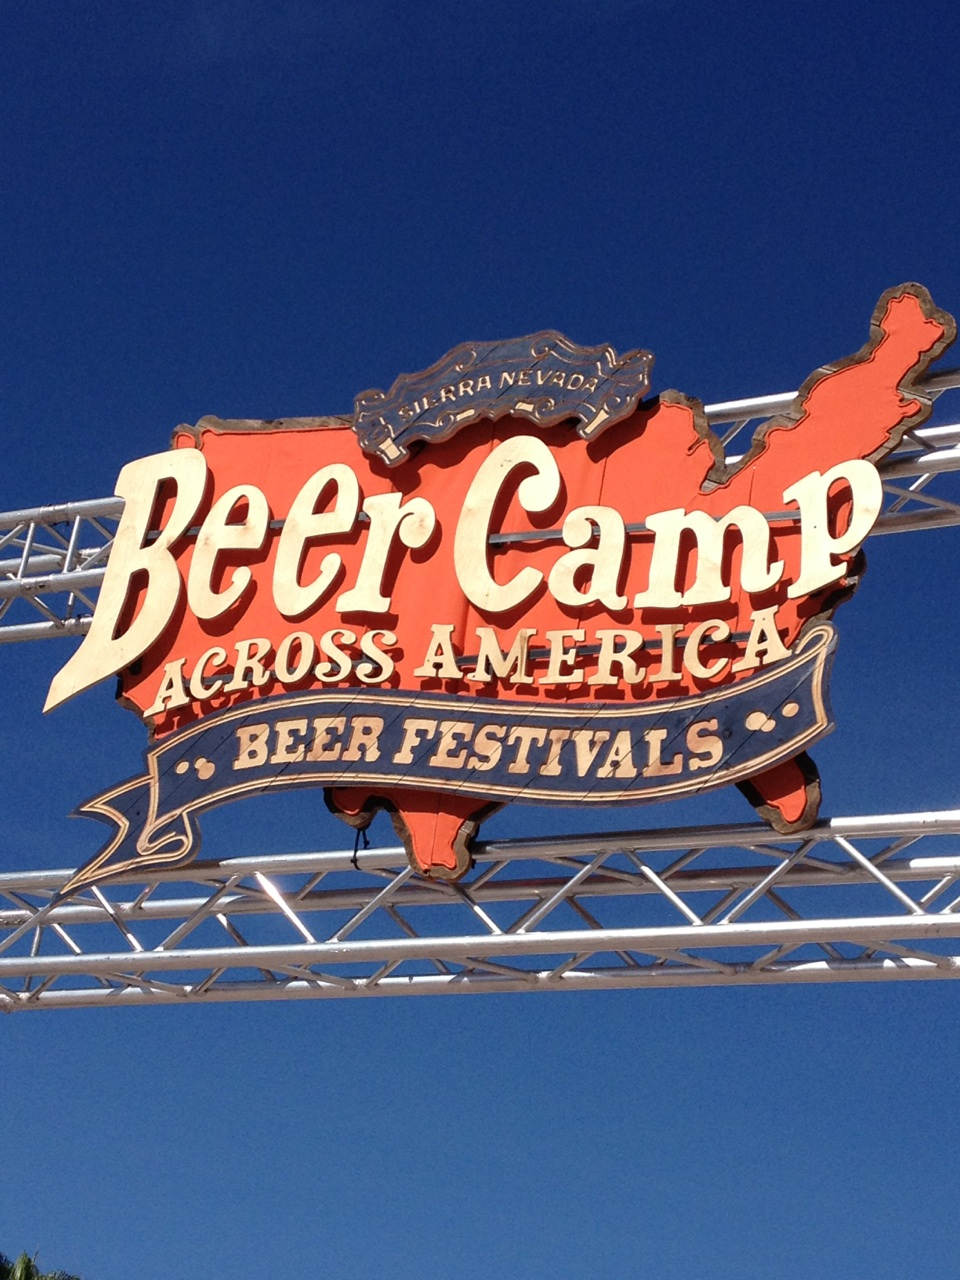 SNB Beer Camp